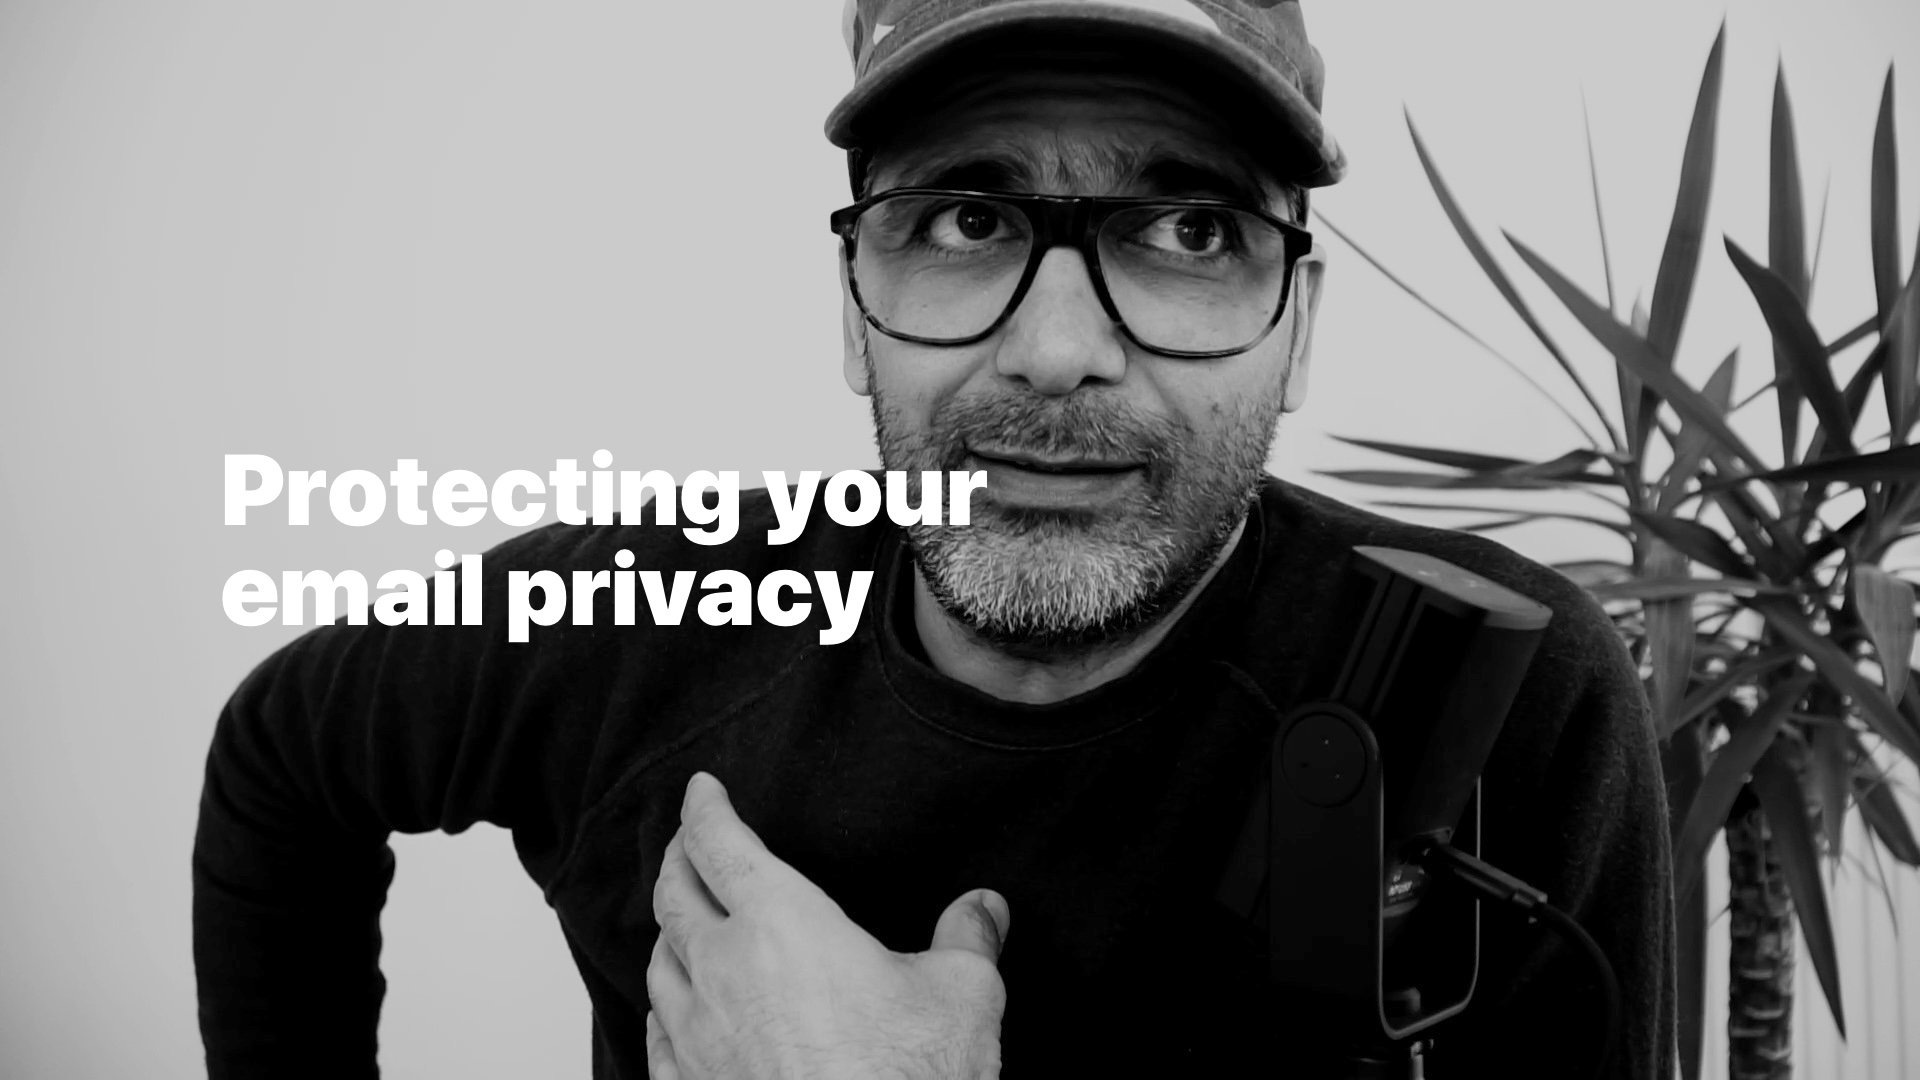 Protecting your email privacy